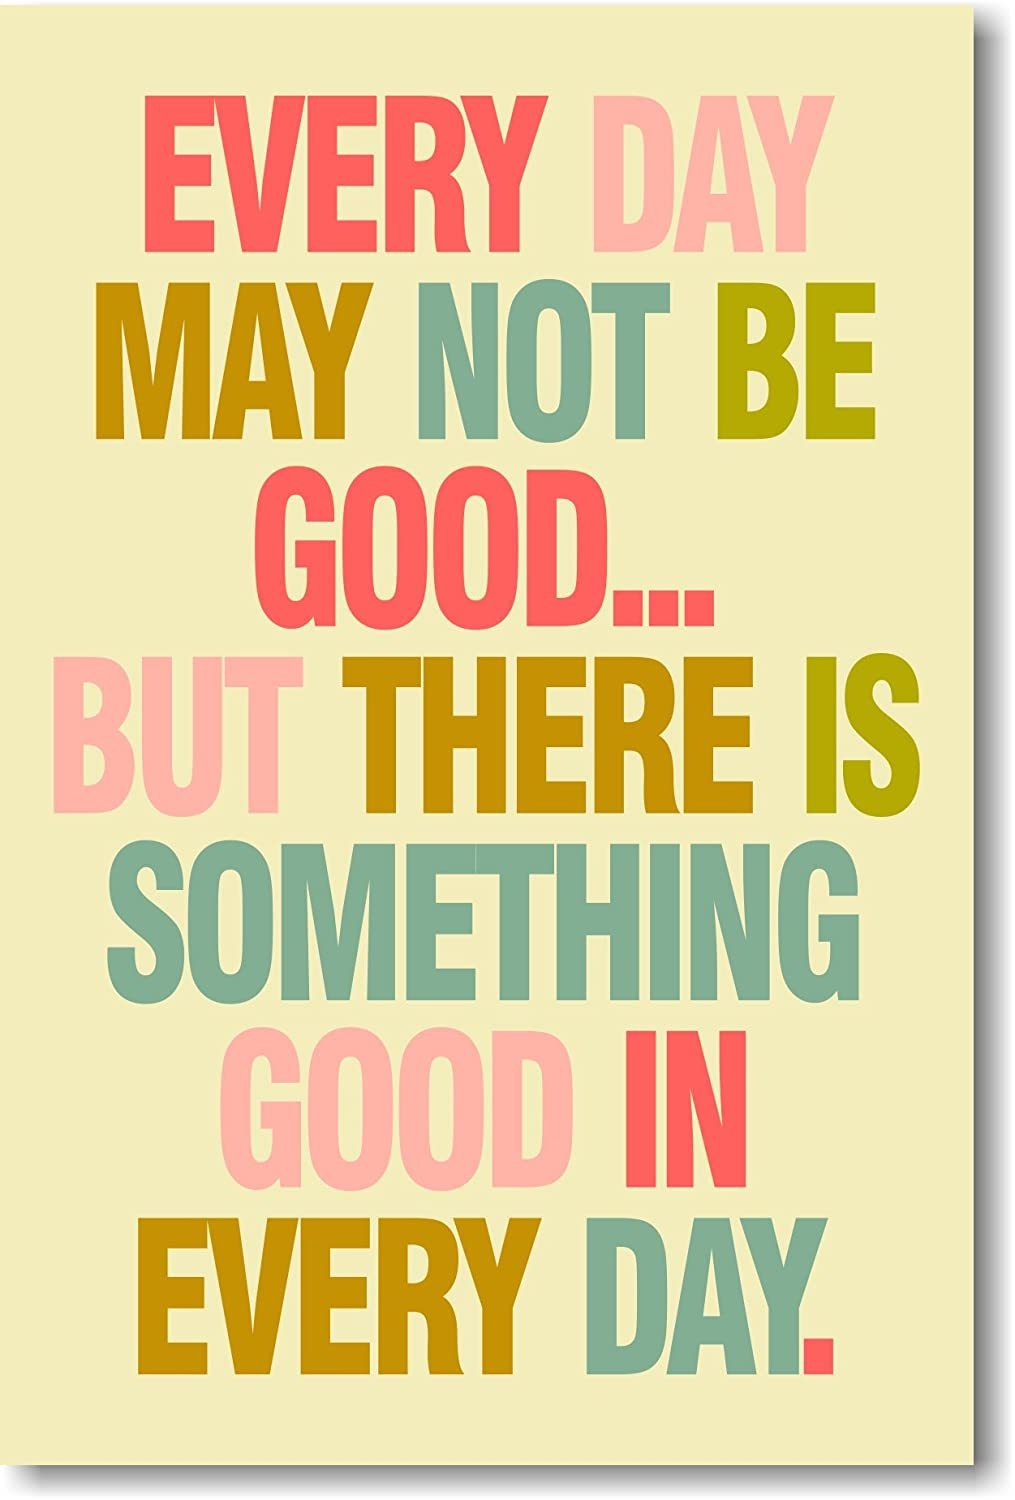 Every day may not be good,